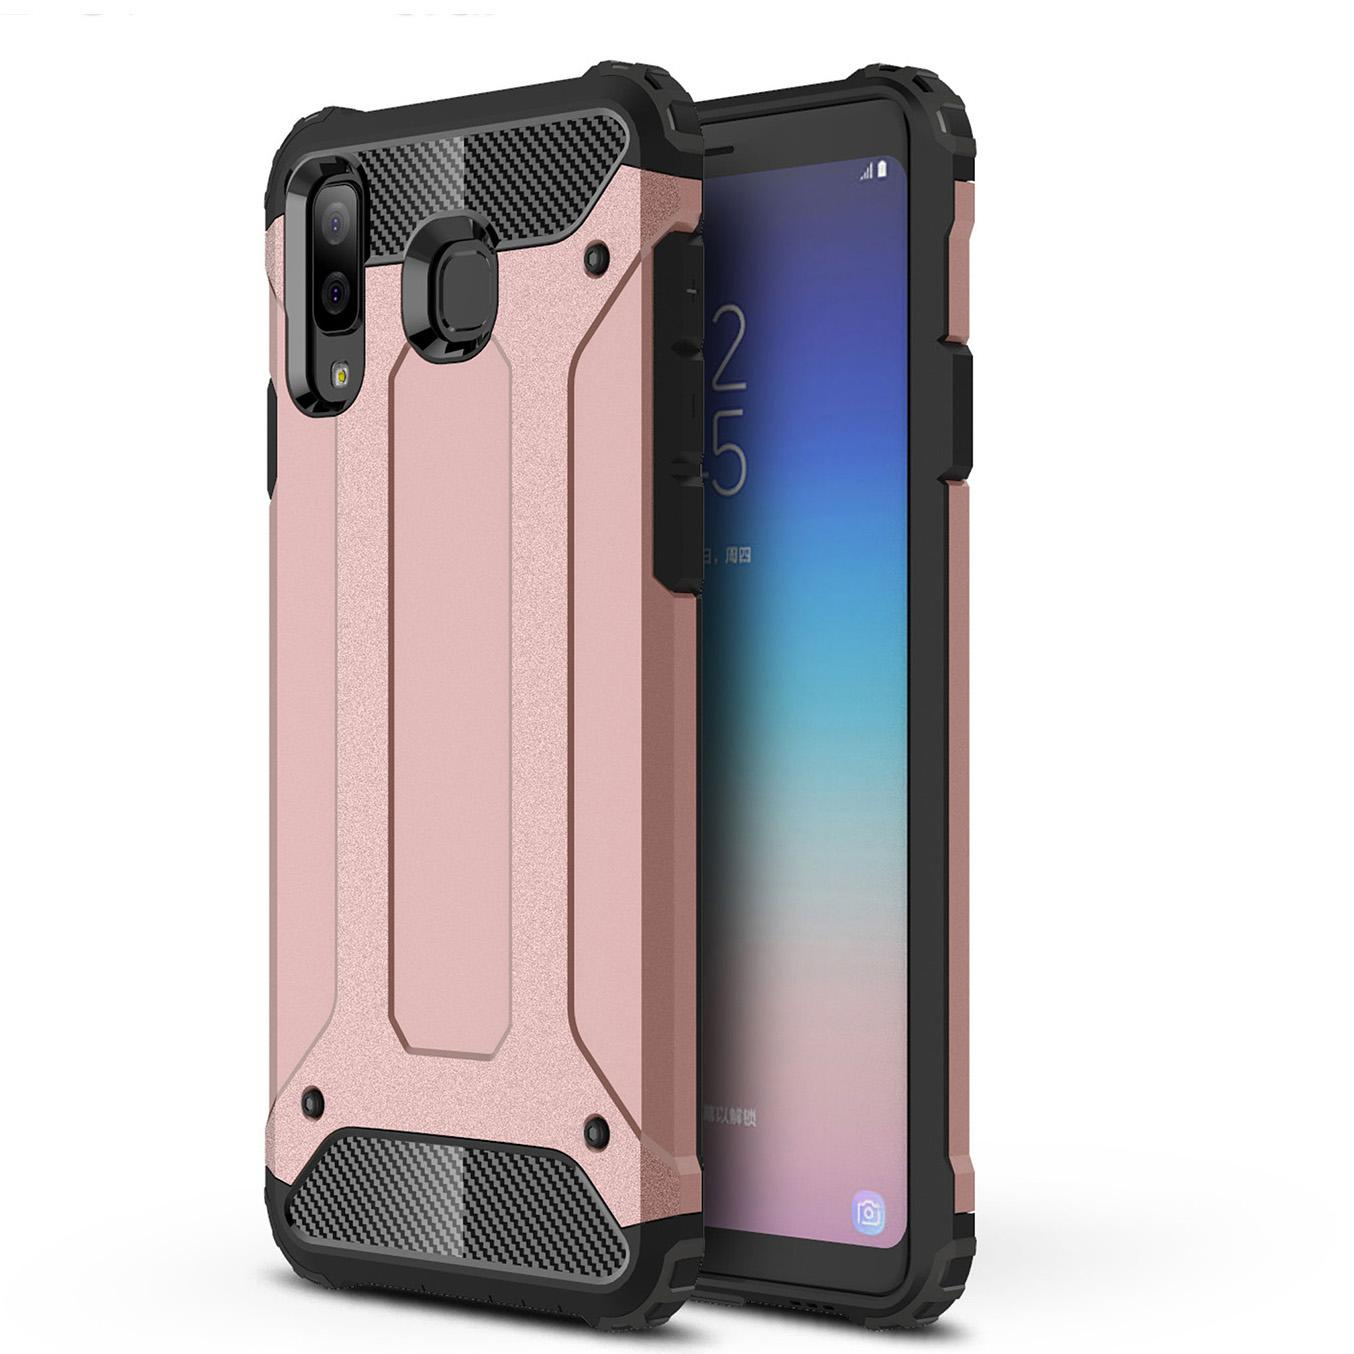 Jual Softcase Ultrathin Aircase For LENOVO A7700 Free Holder Source Softcase Tought Armor Series iPhone 5. Source · Buy .